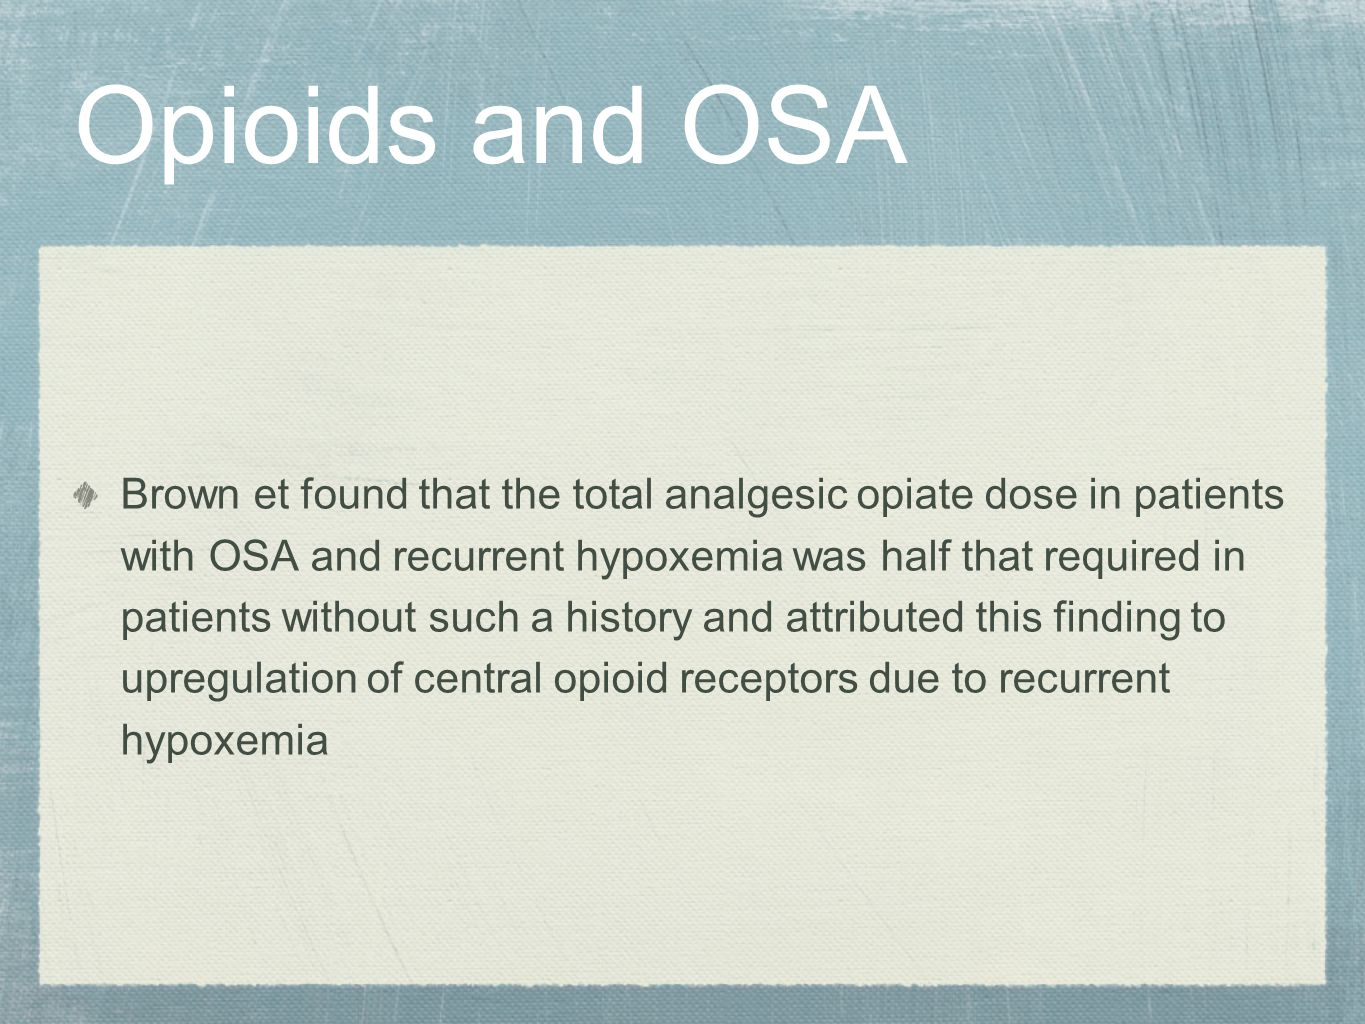 Opioids and OSA